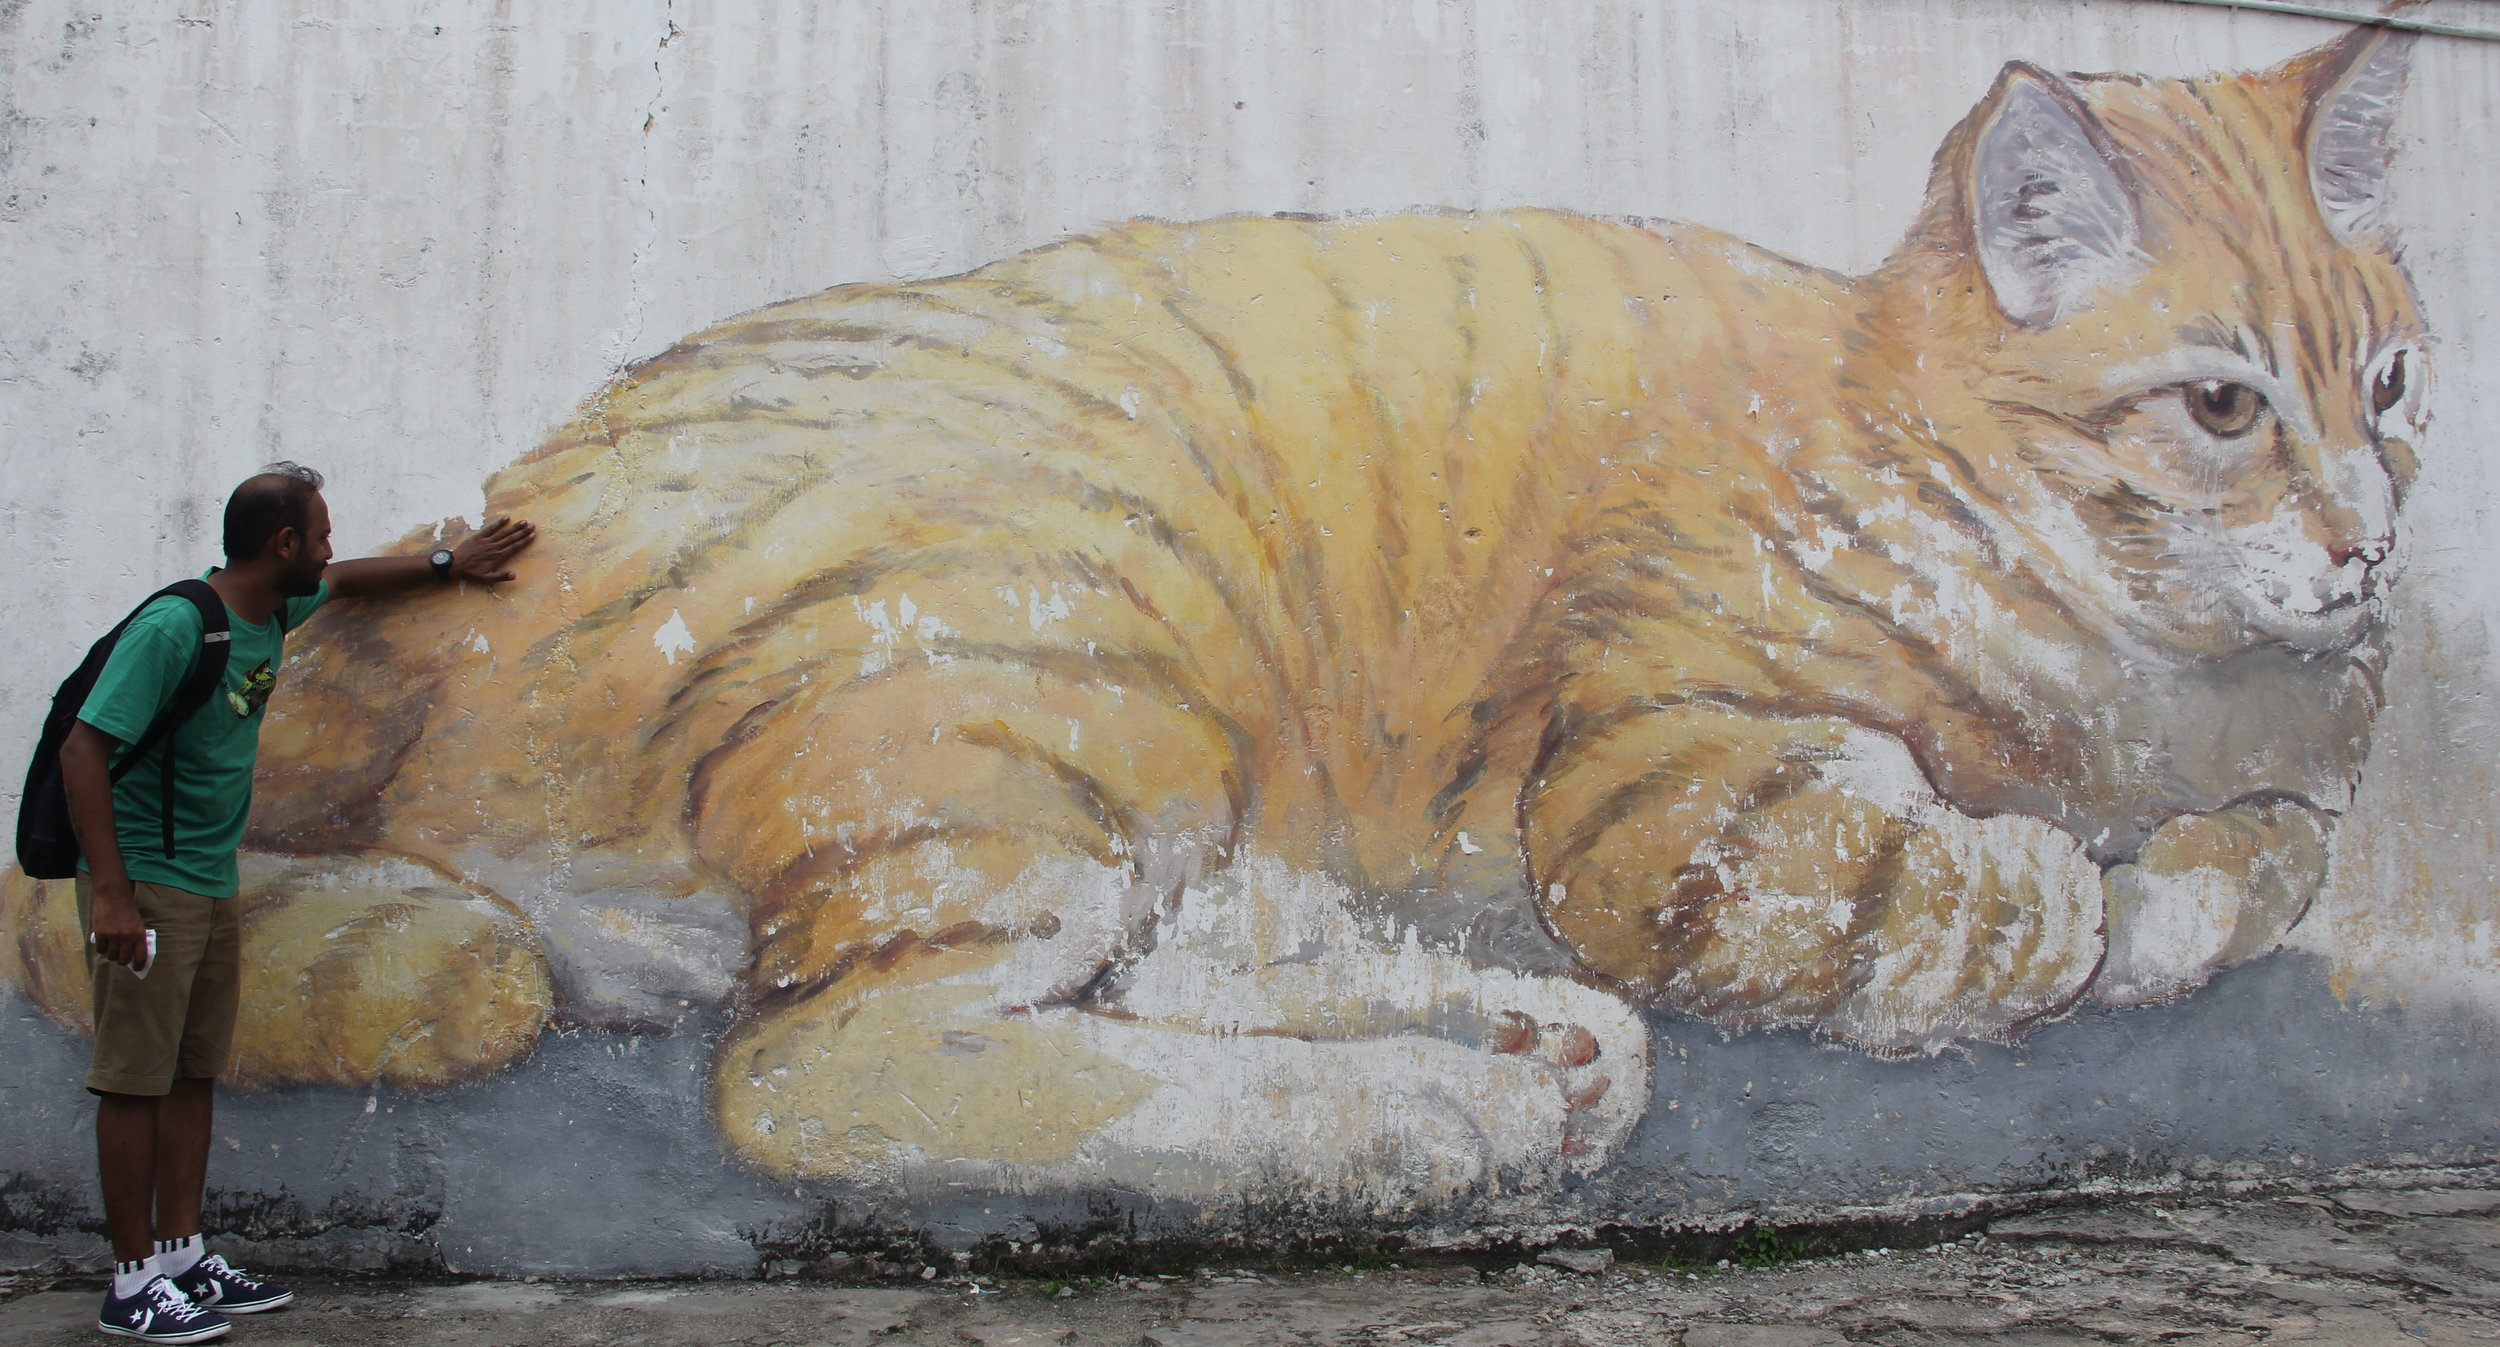 A BIIIIIIIIGGGGG Cat. This cat is gonna be difficult to pet. Difficult to miss this wall-sized treasure.